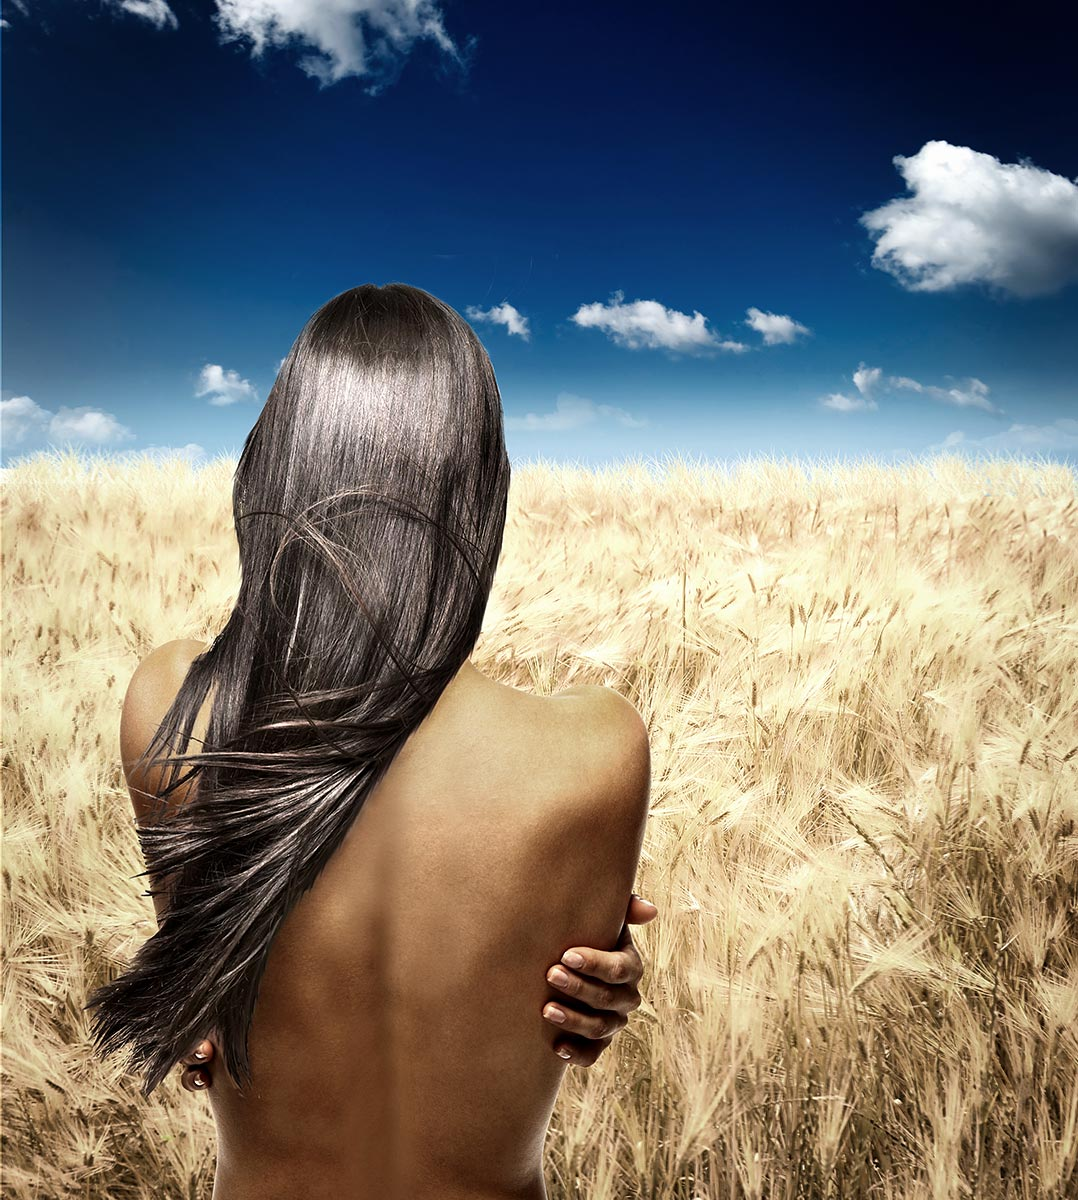 Hair and Wheat Fashion for Female Model